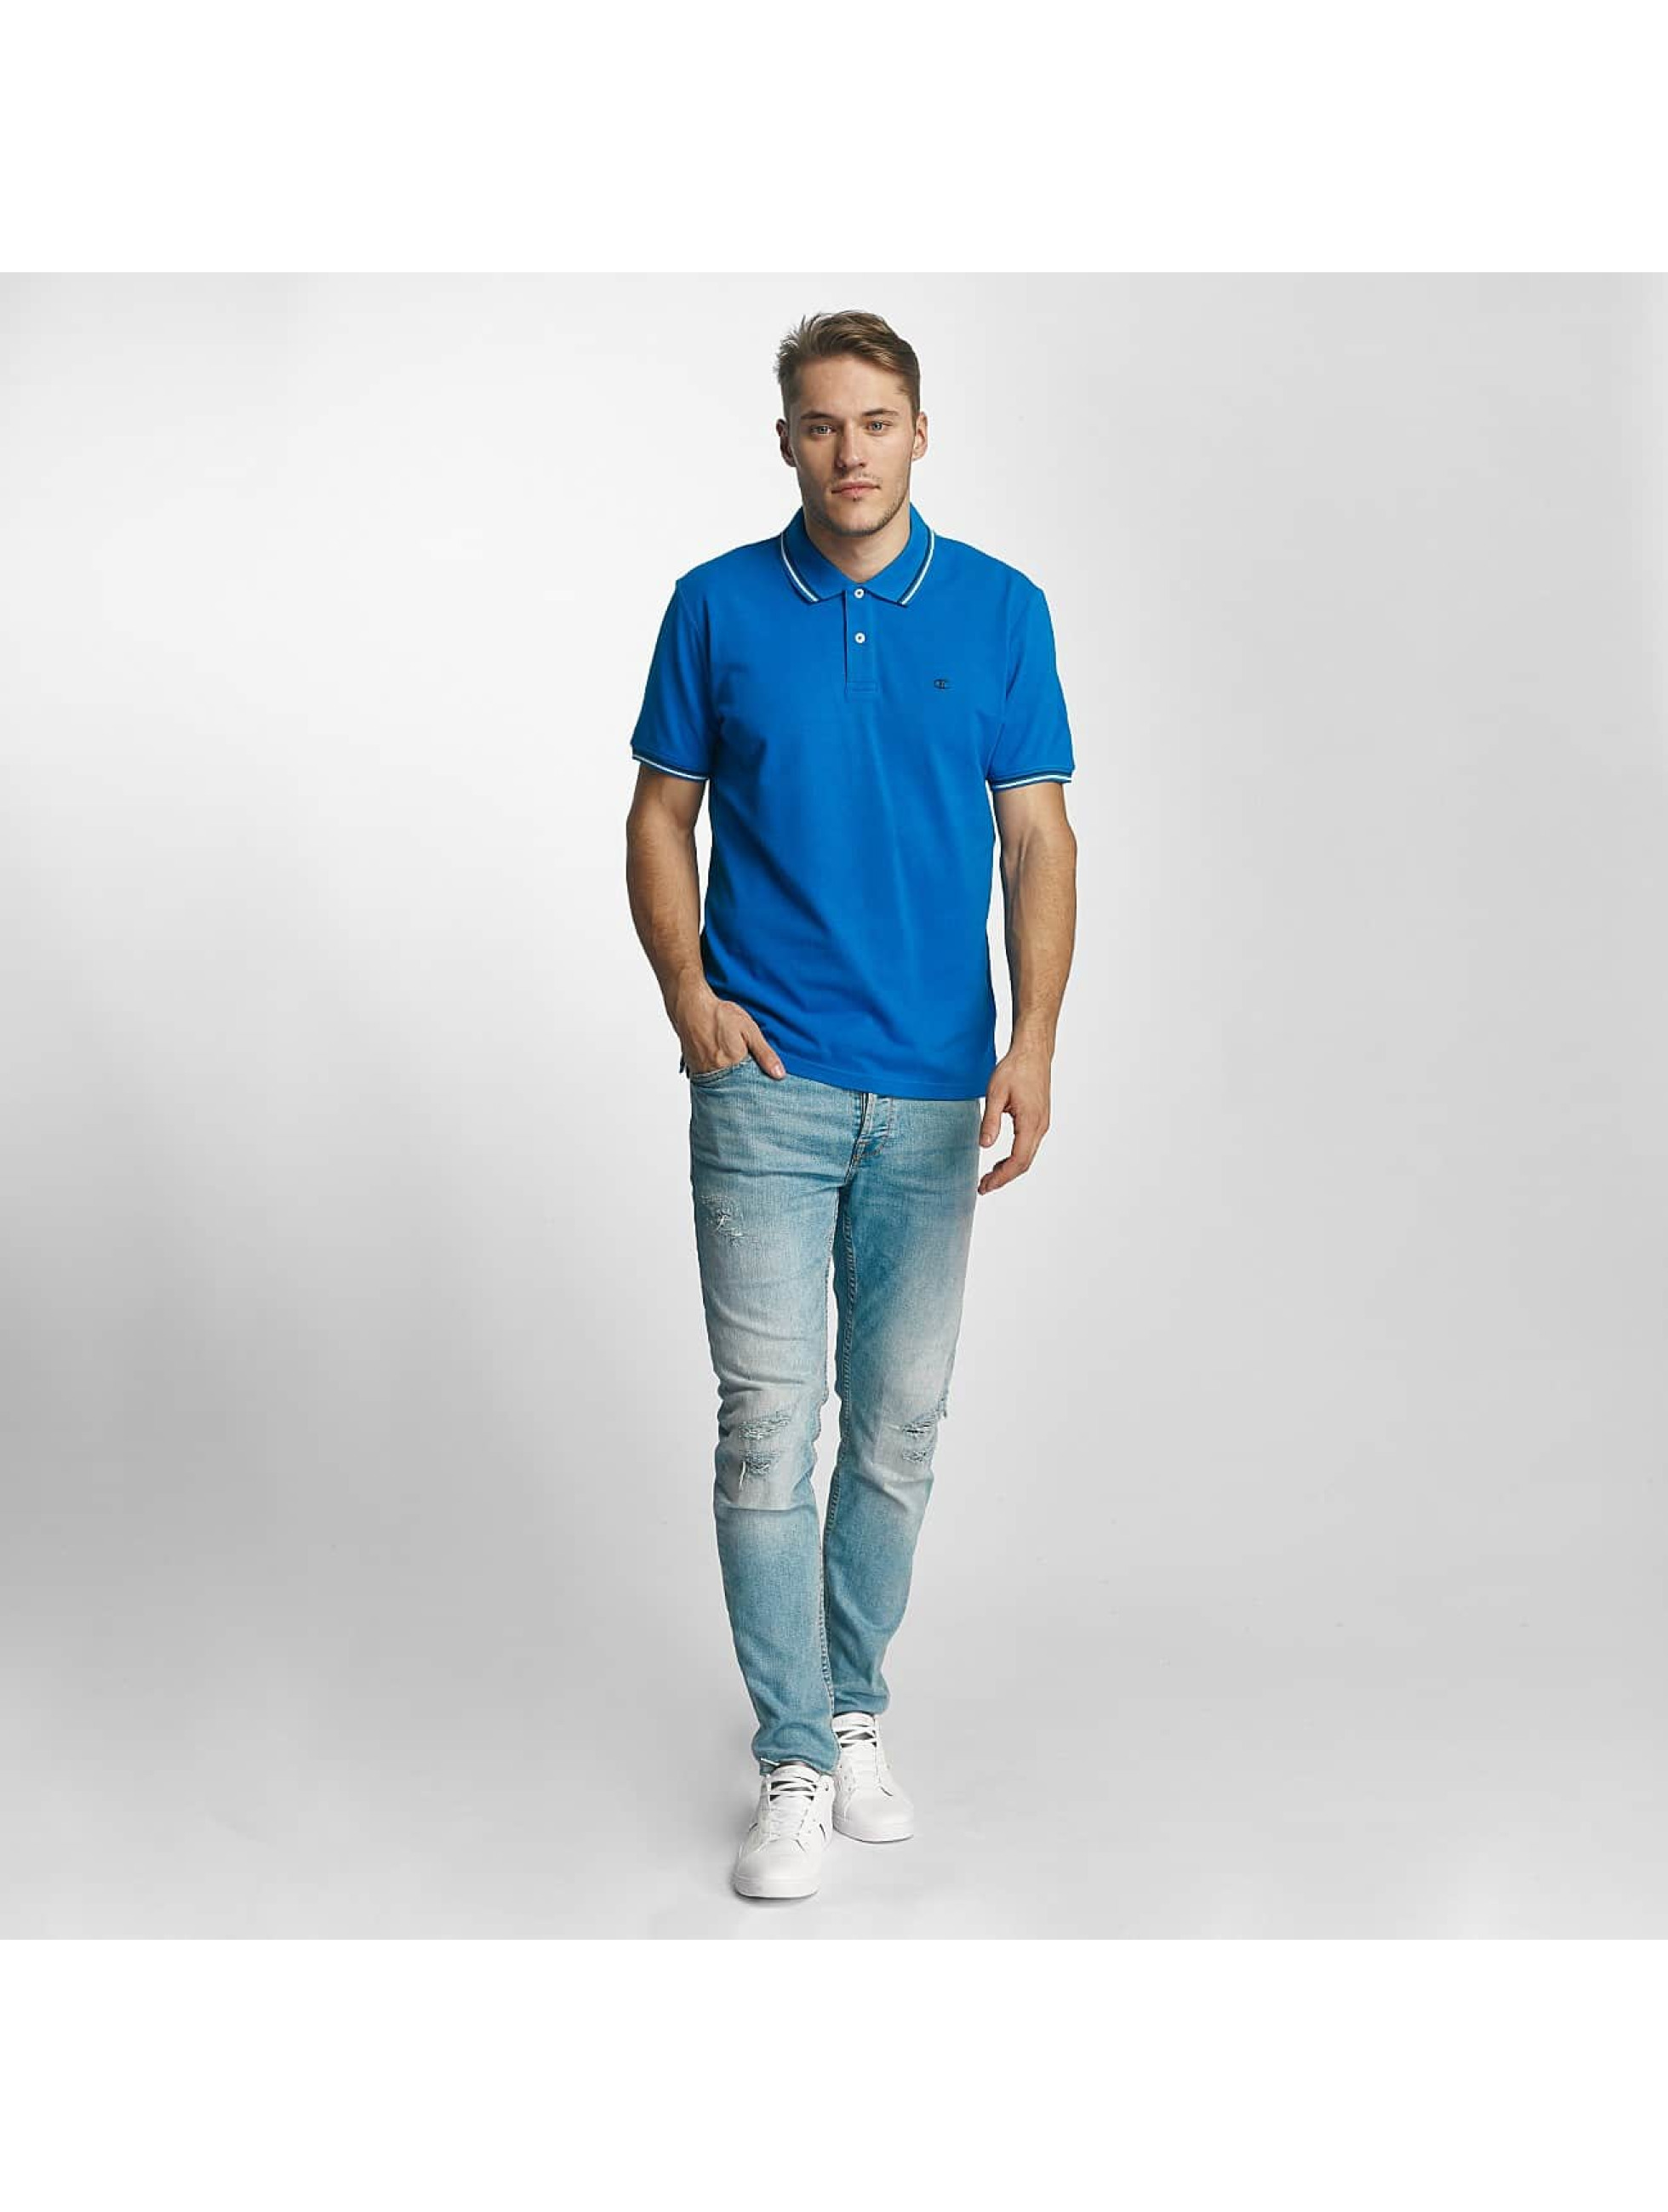 Champion Athletics poloshirt Metropolitan blauw